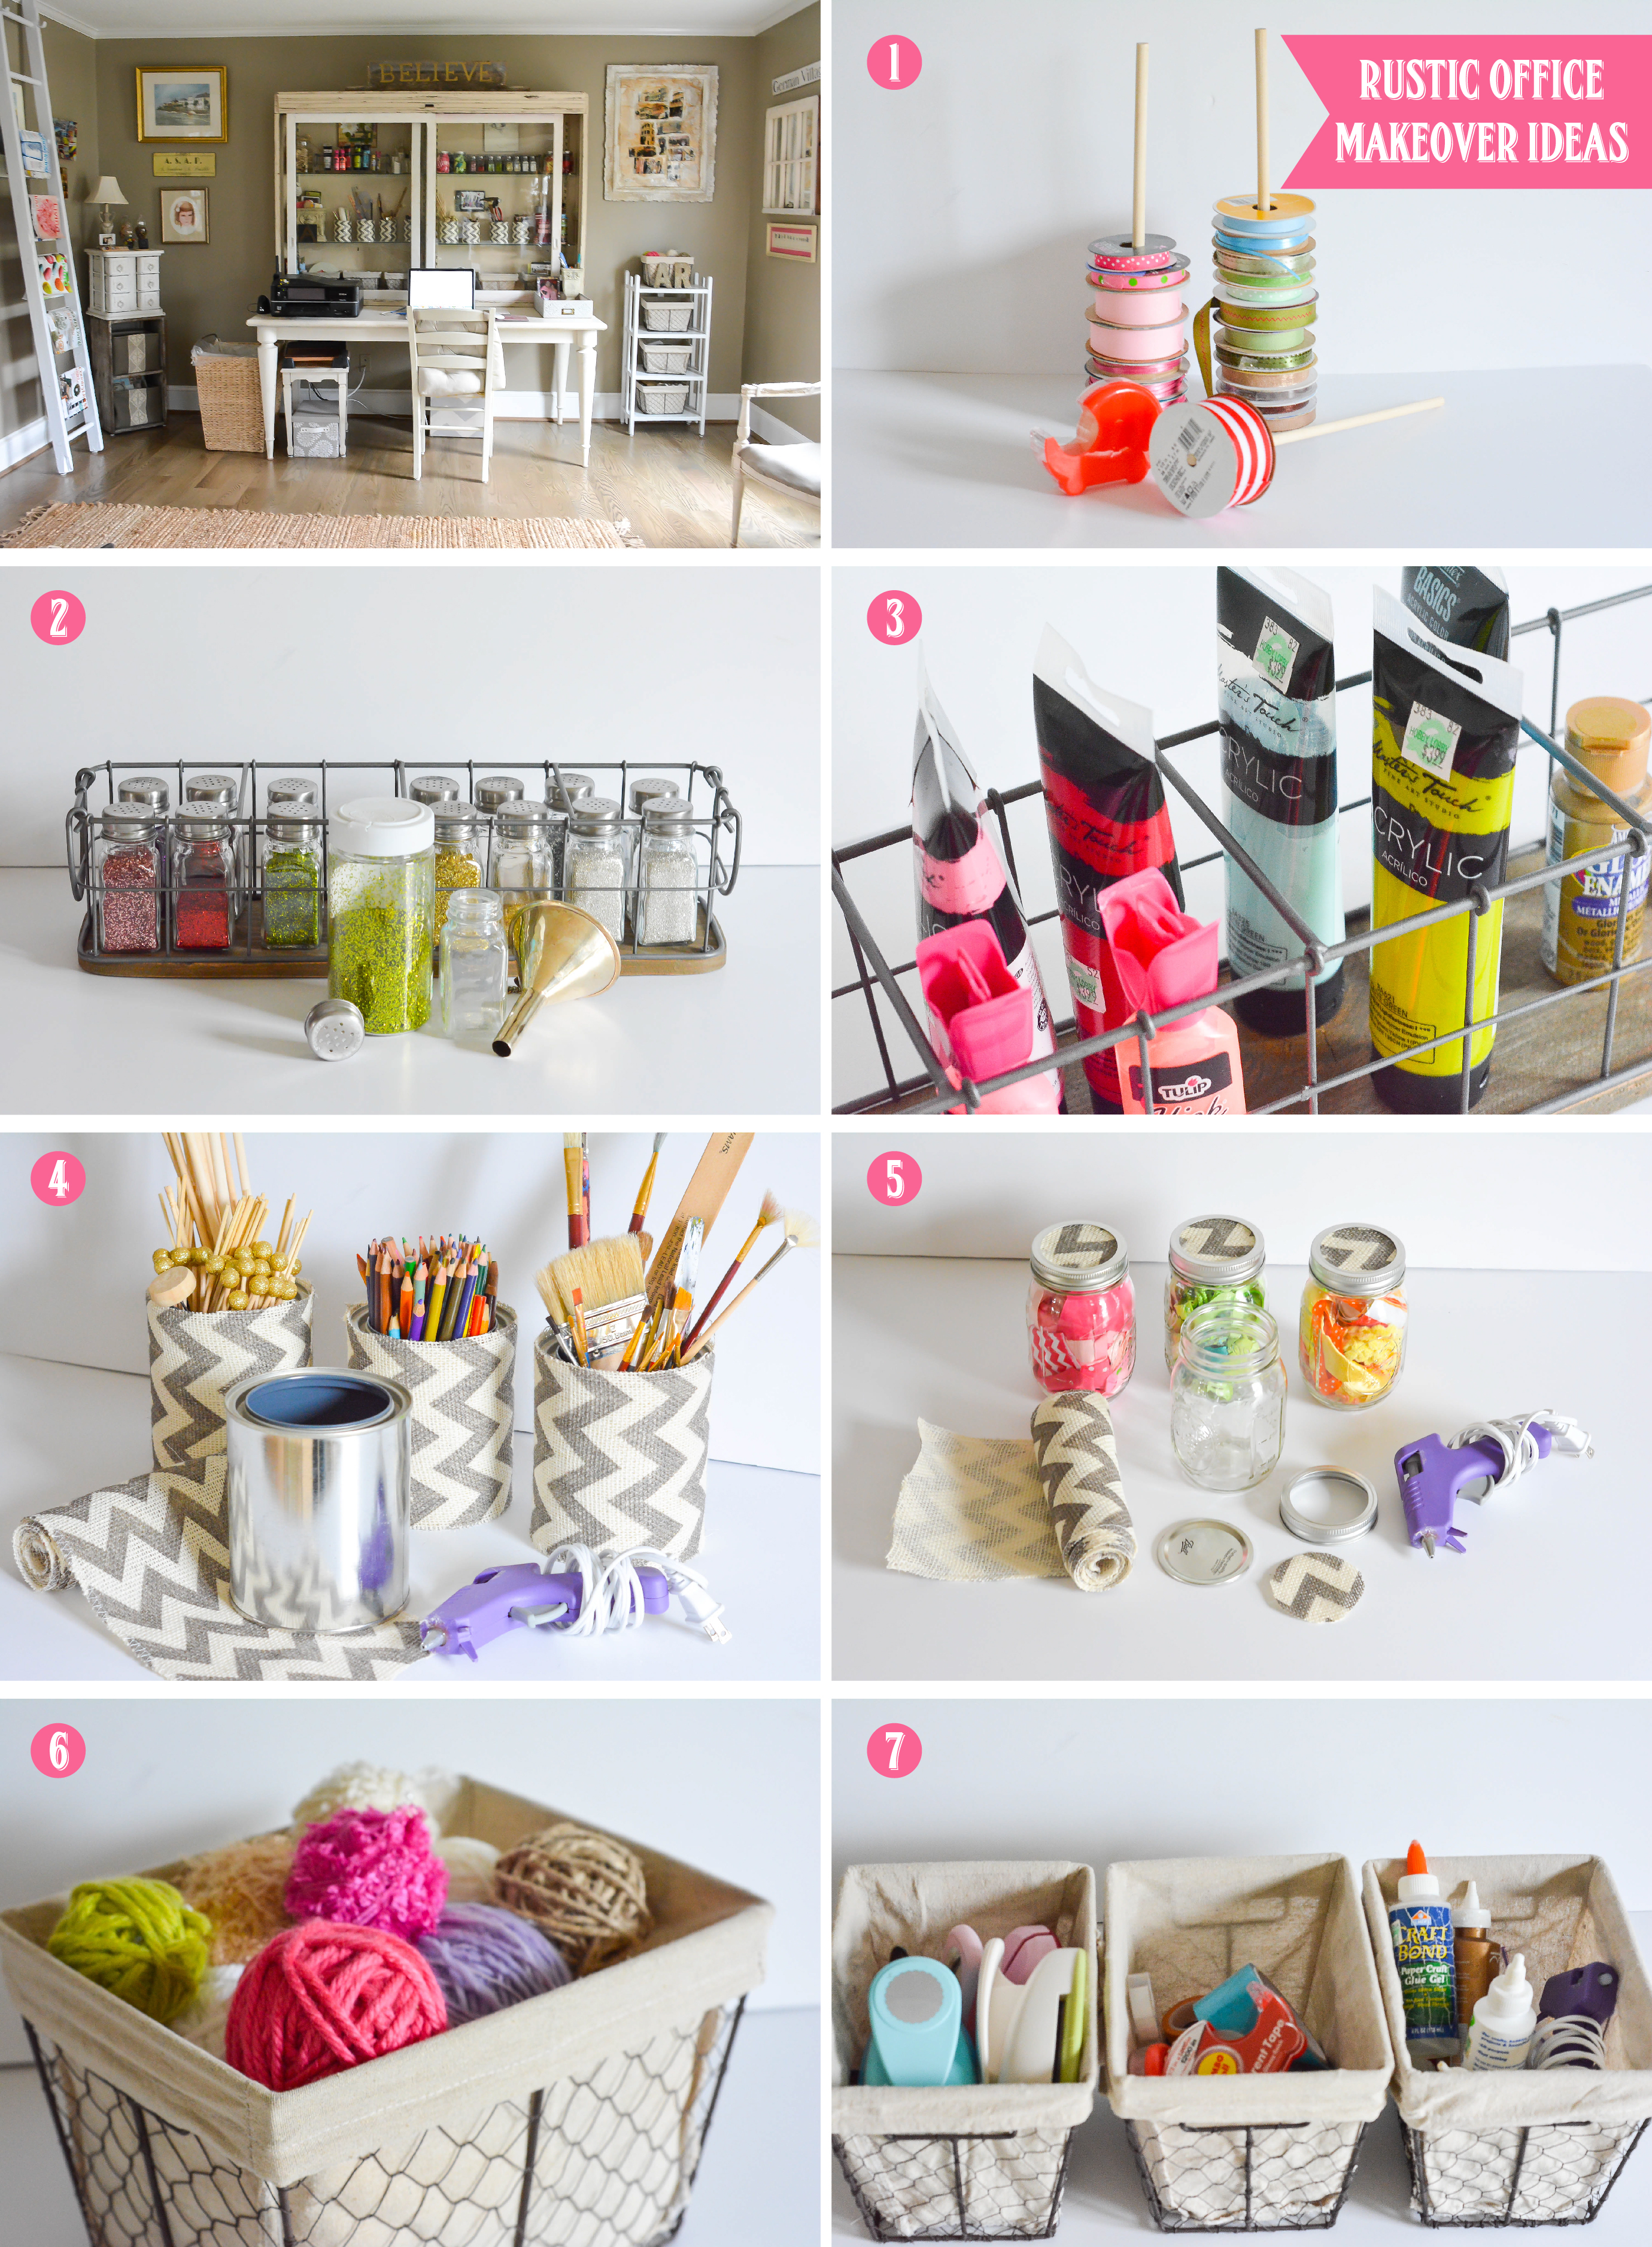 Ruff Draft: Spring Cleaning - Organize Your Office with A Rustic ...